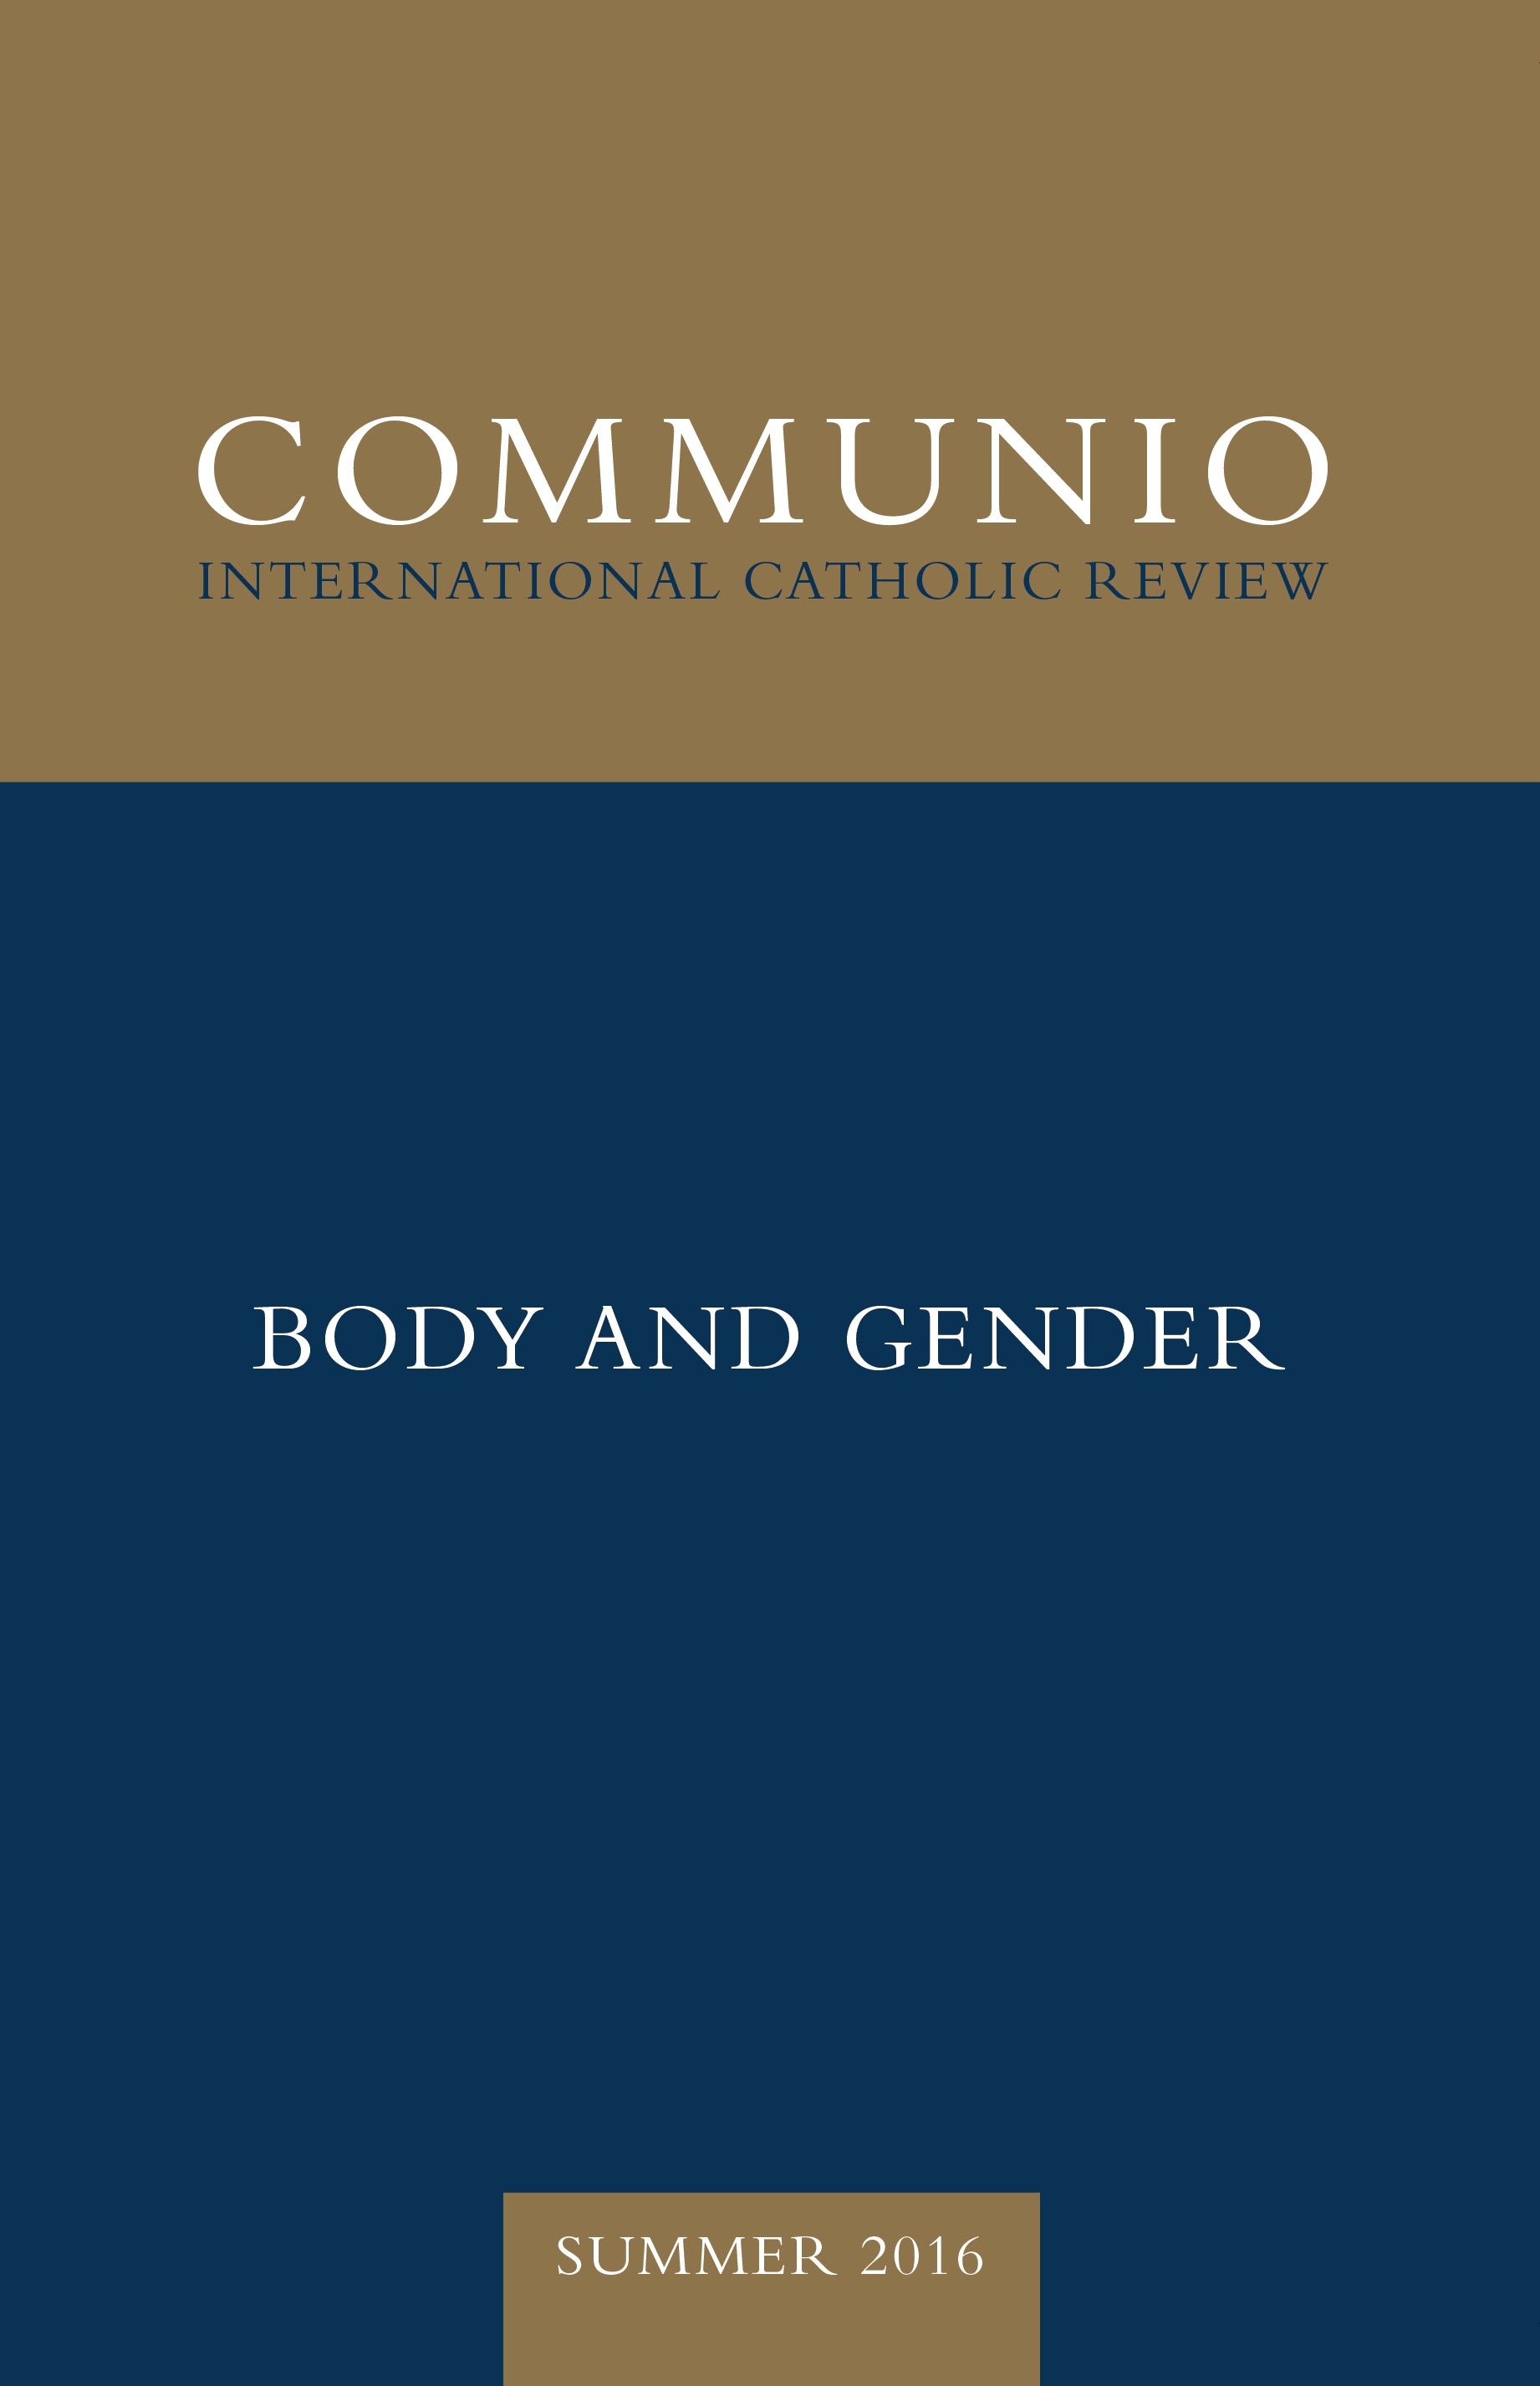 Communio - Summer 2016 - Body and Gender (photocopy)